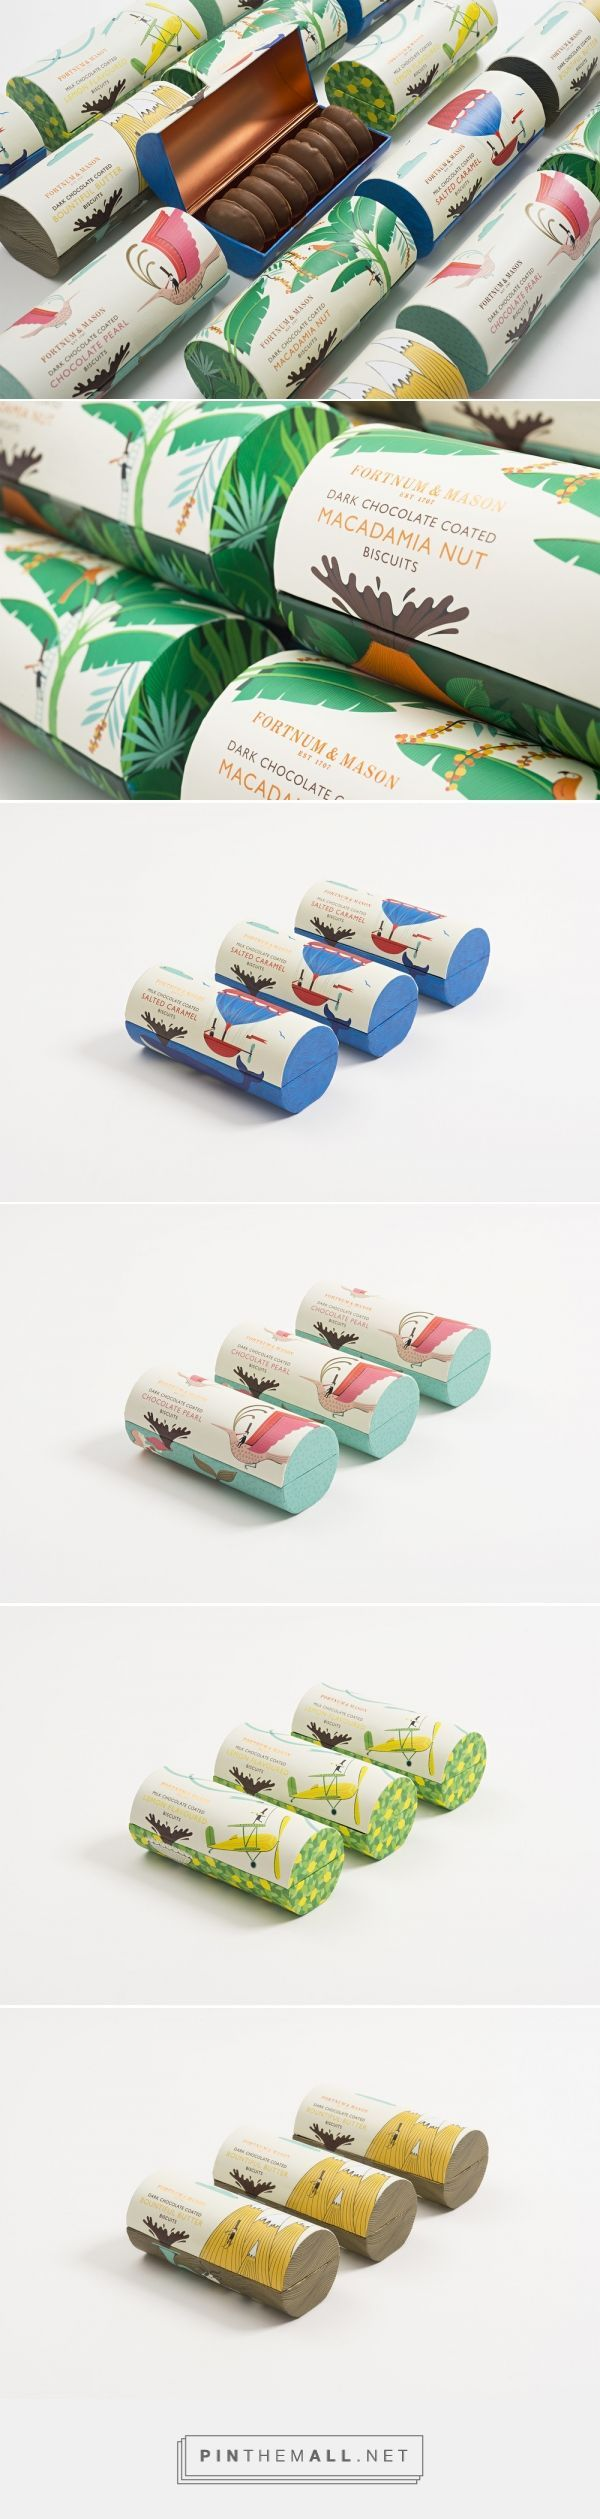 Chocolate Coated Biscuits Designed by Together Design